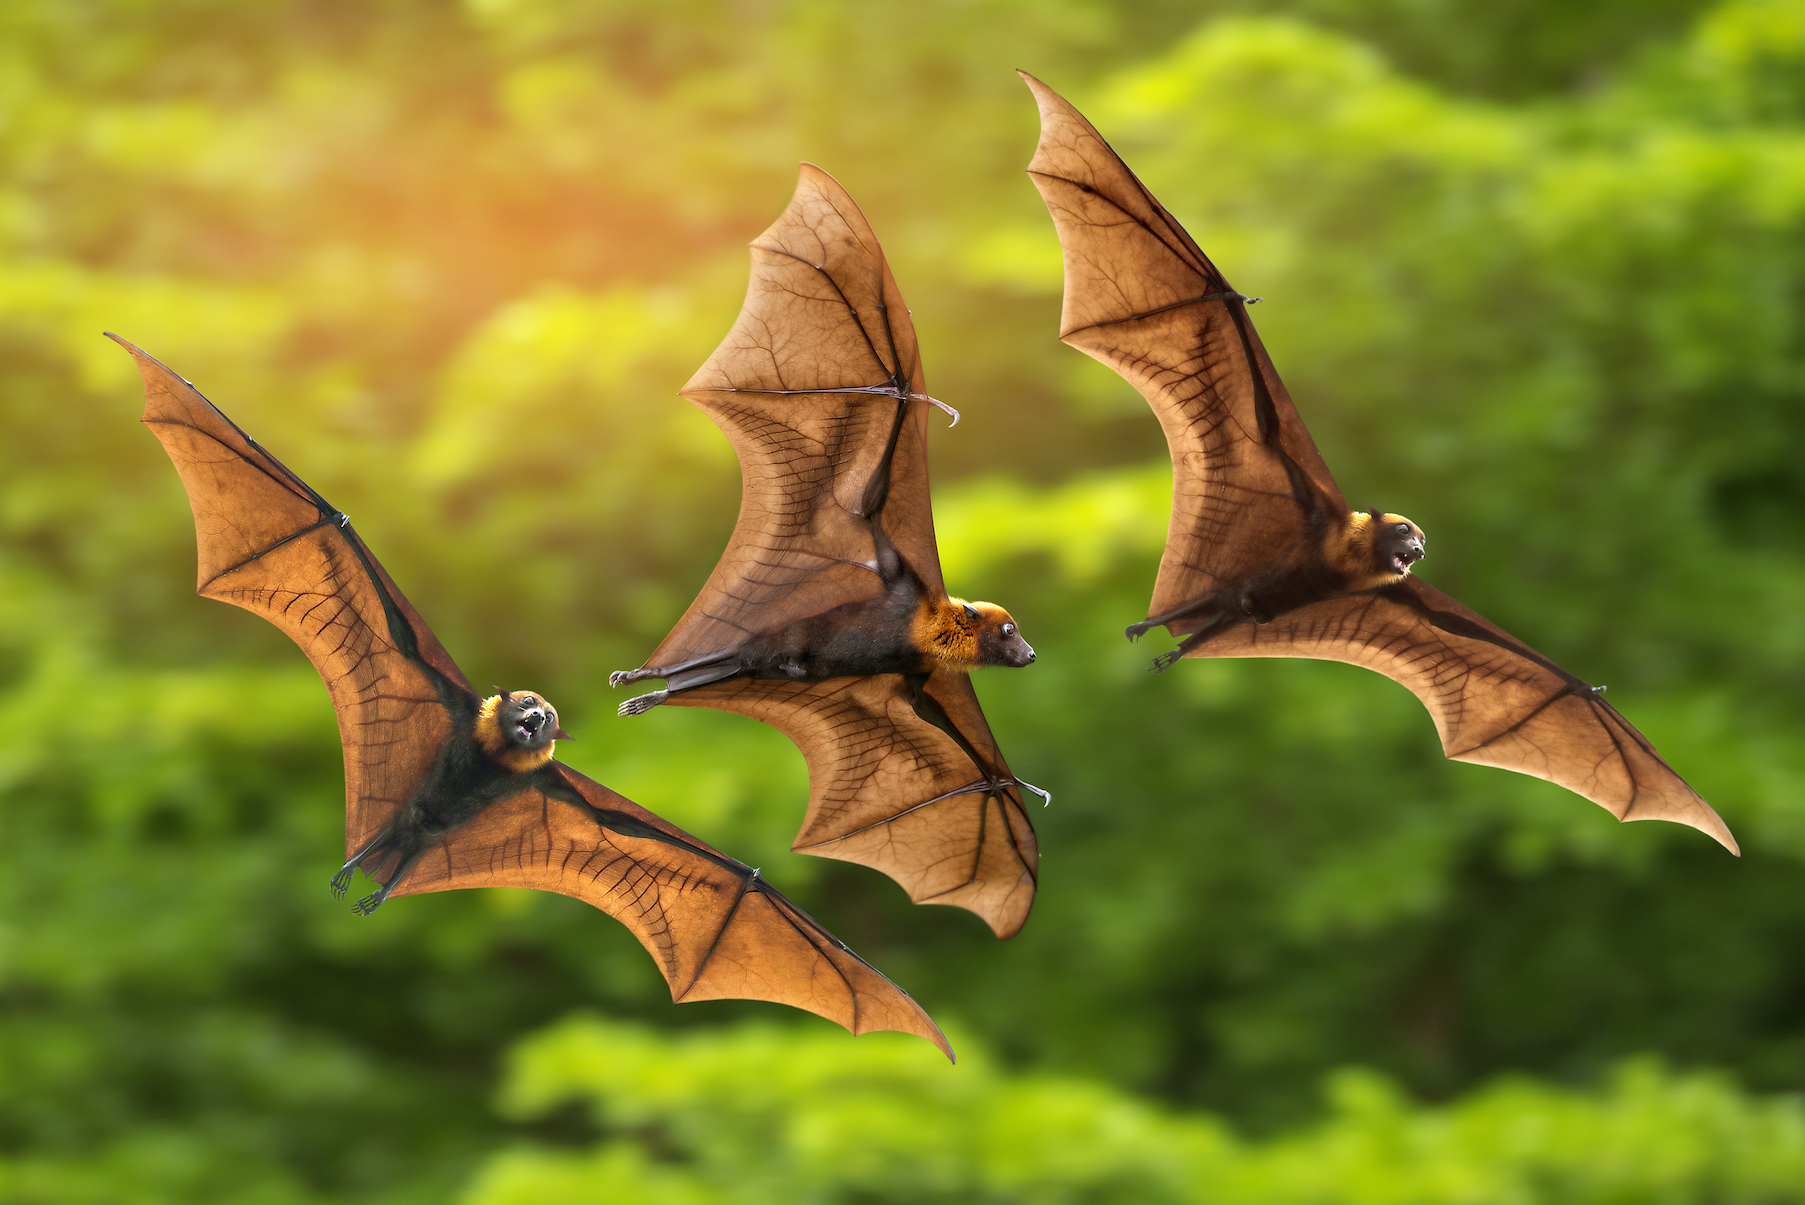 How do bats navigate dark environments at such fast speeds? They use echolocation, or biosonar, to adapt to the environment around them.